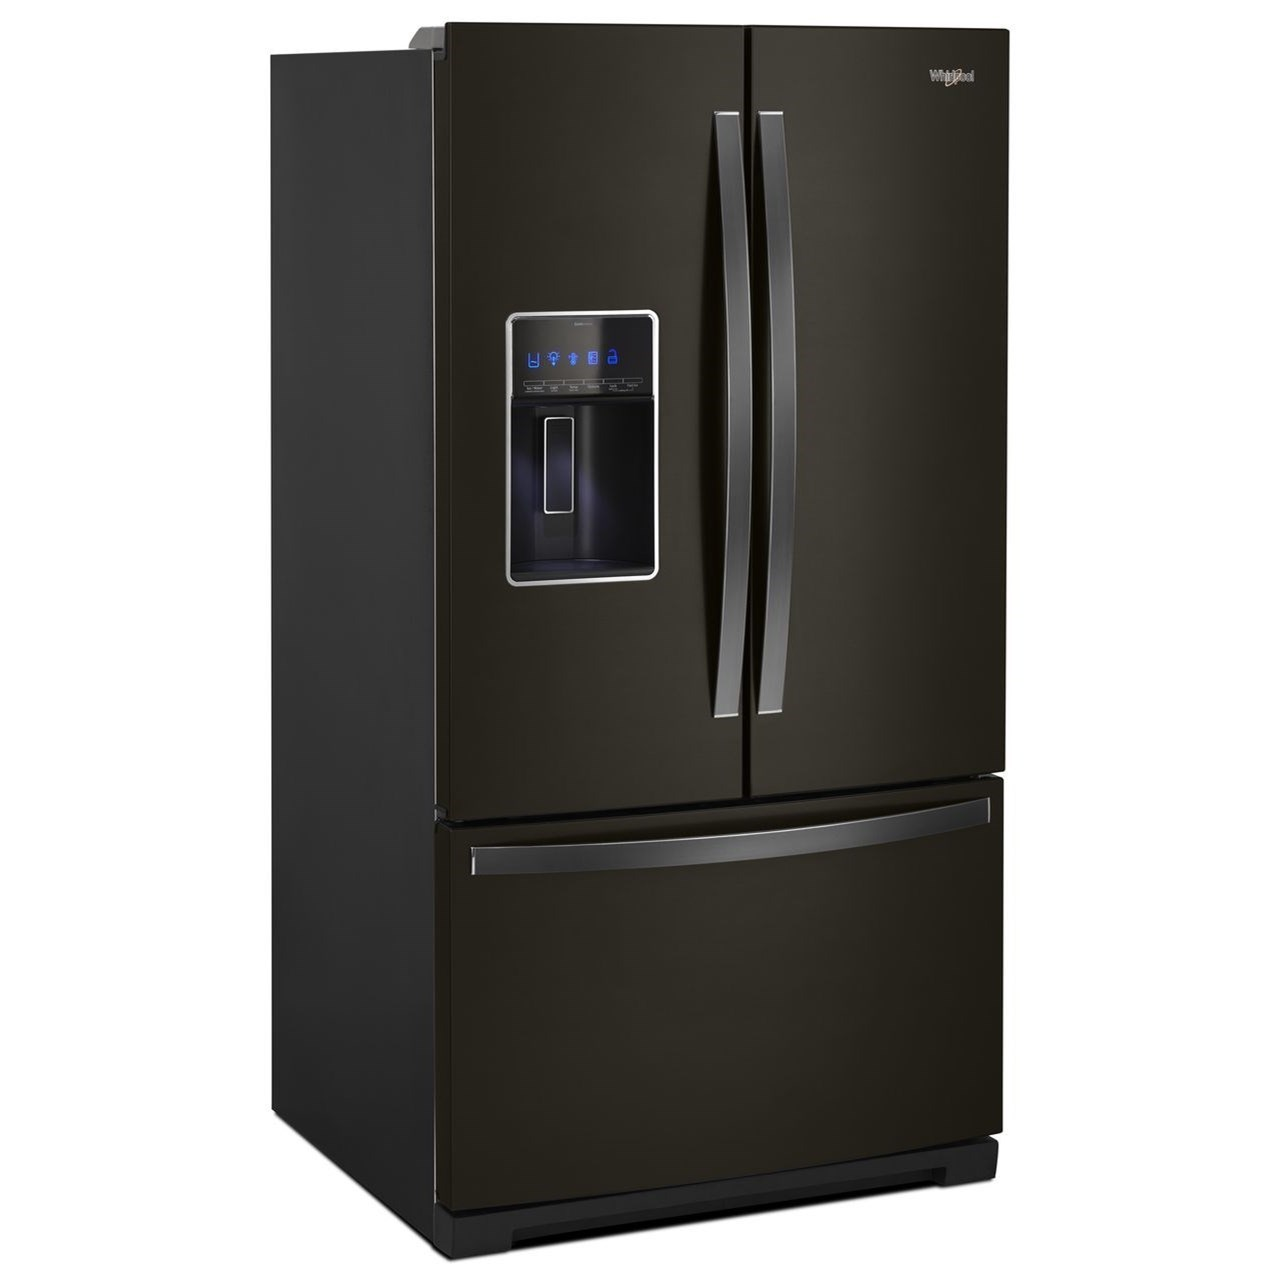 French Door Refrigerators 27 Cu. Ft. French Door Refrigerator by Whirlpool at Furniture and ApplianceMart